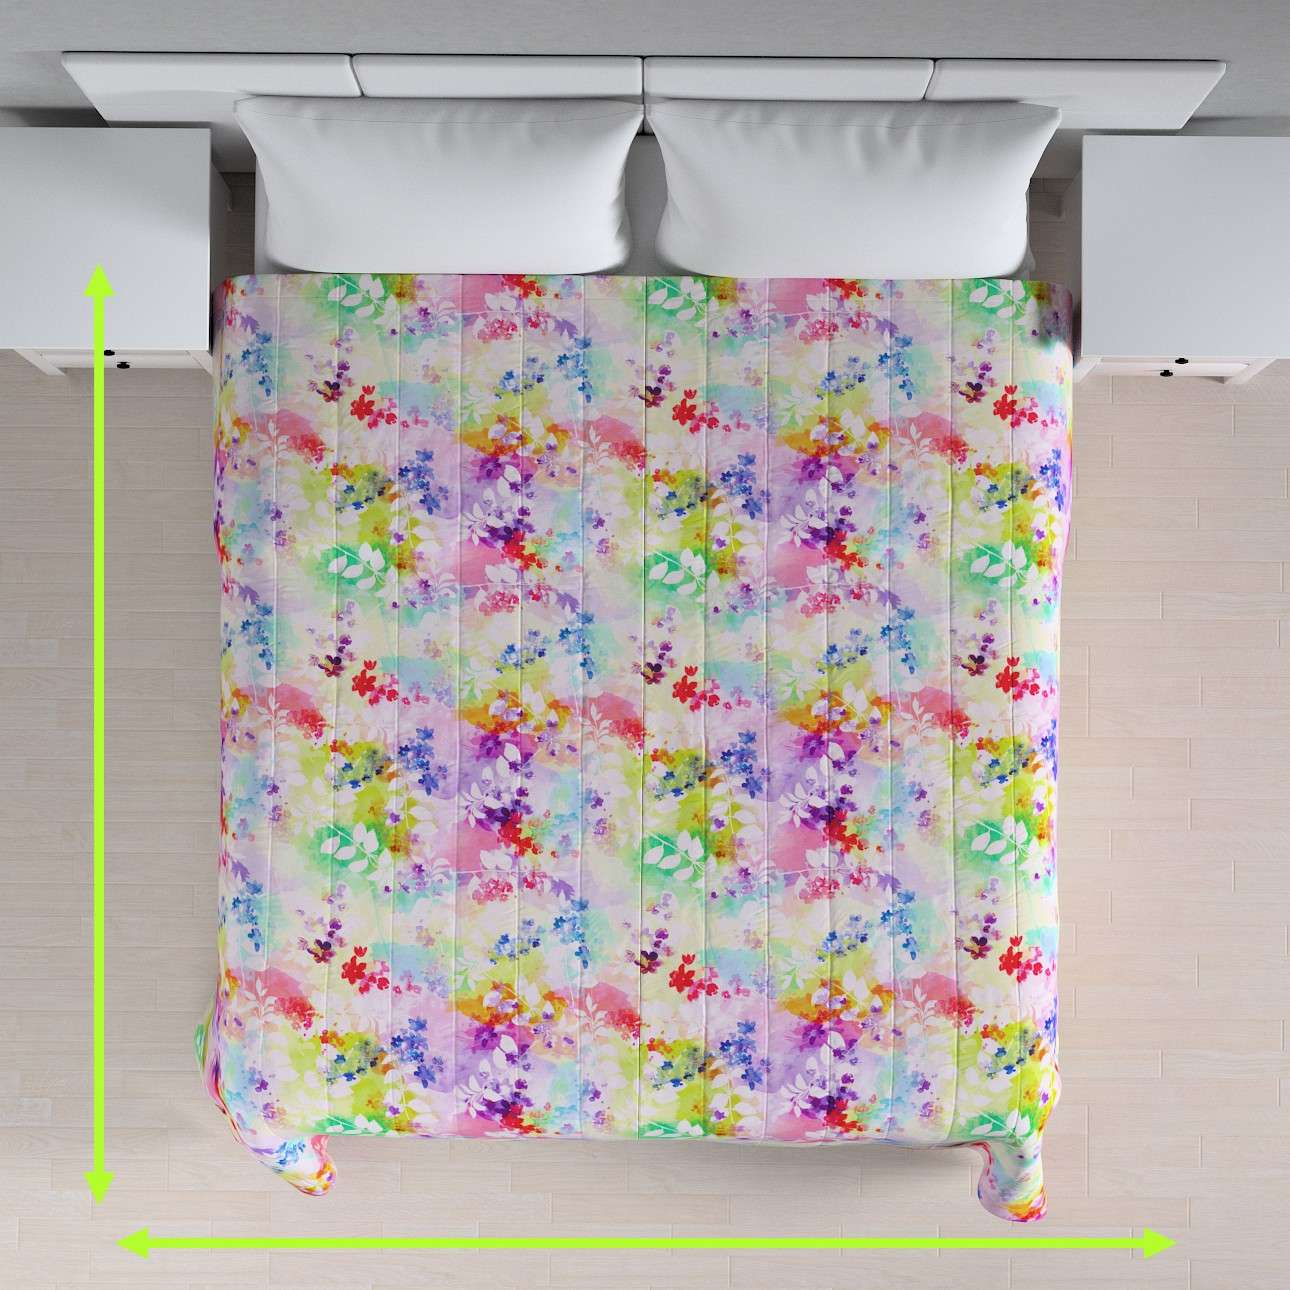 Quilted throw (vertical quilt pattern) in collection Monet, fabric: 140-07